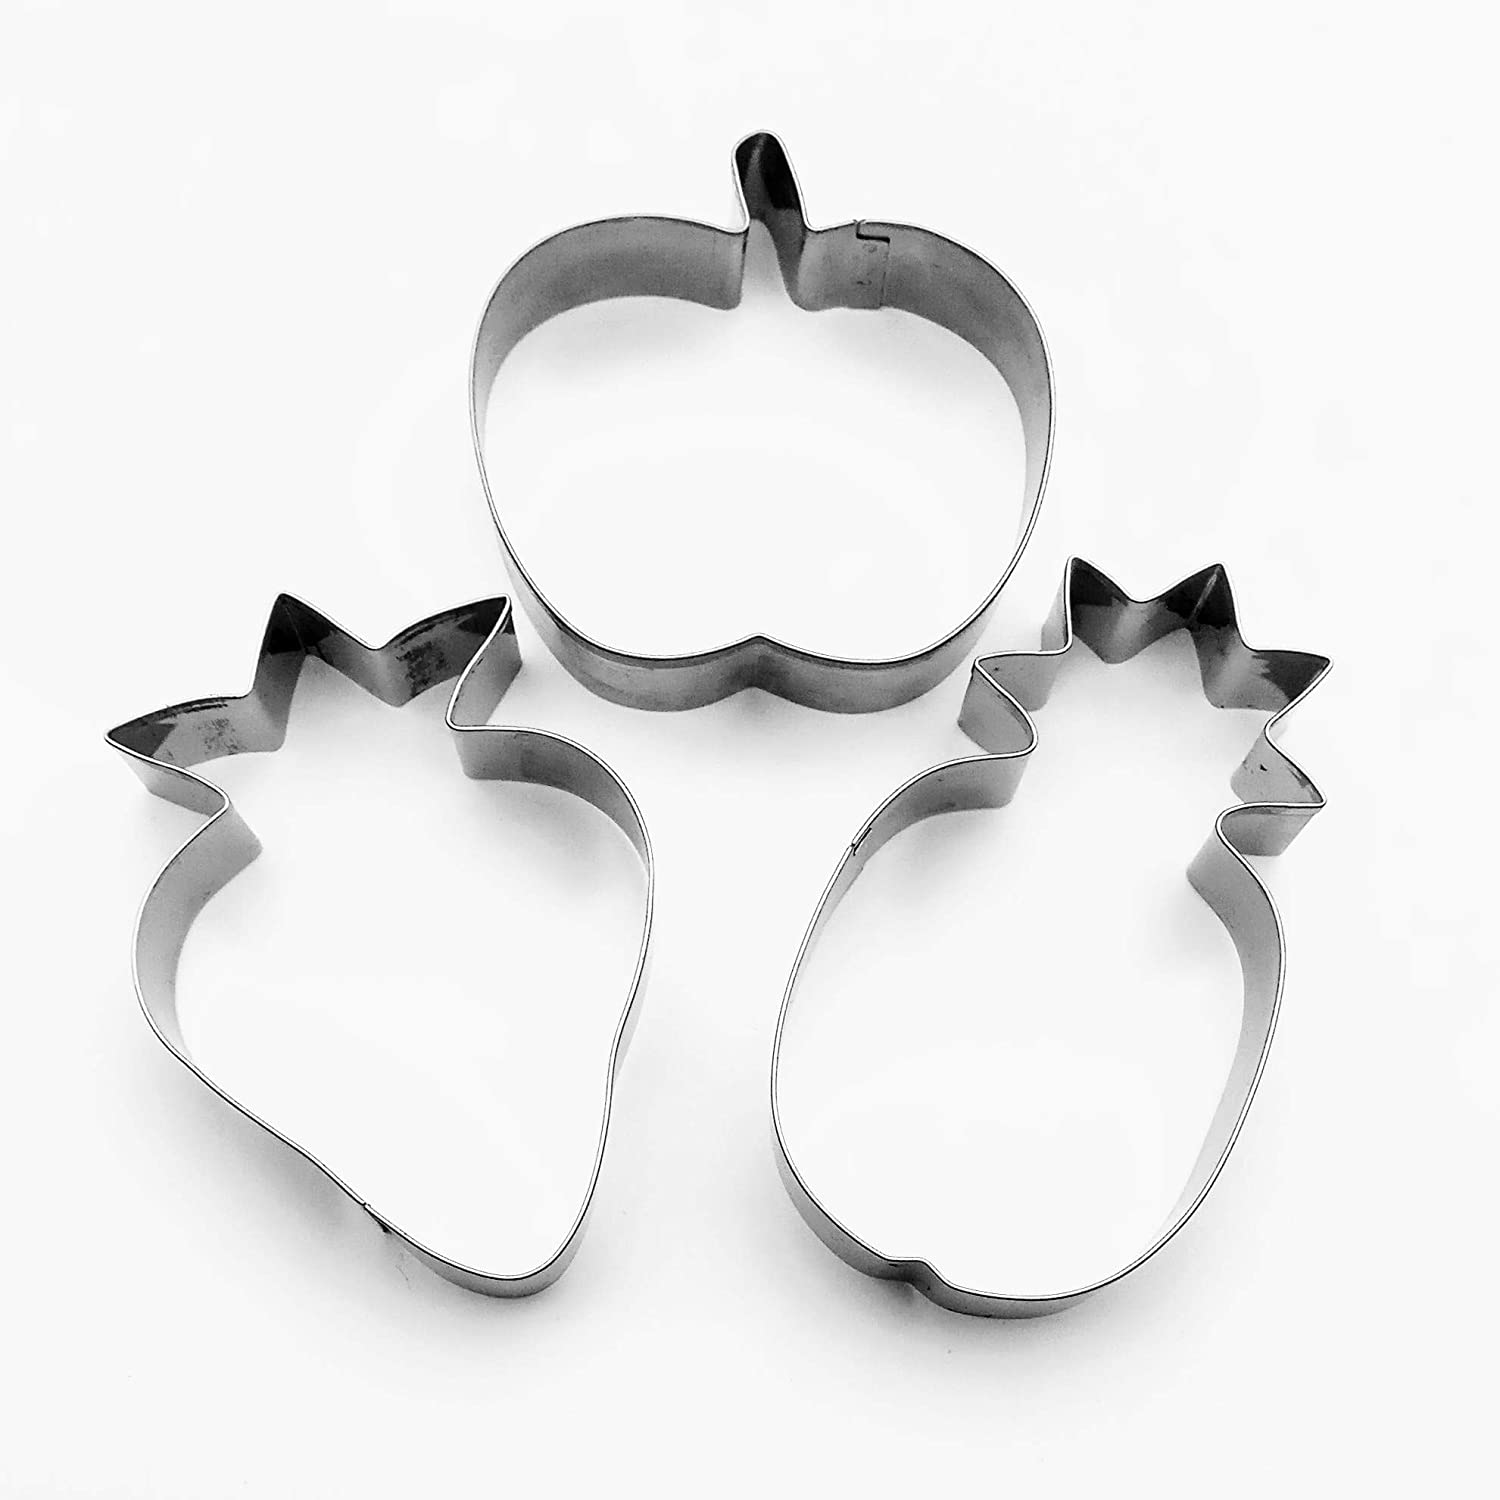 Fruits Cookie cutter Pineapple Strawberry Apple Biscuit Stainless Steel Baking Mold Set